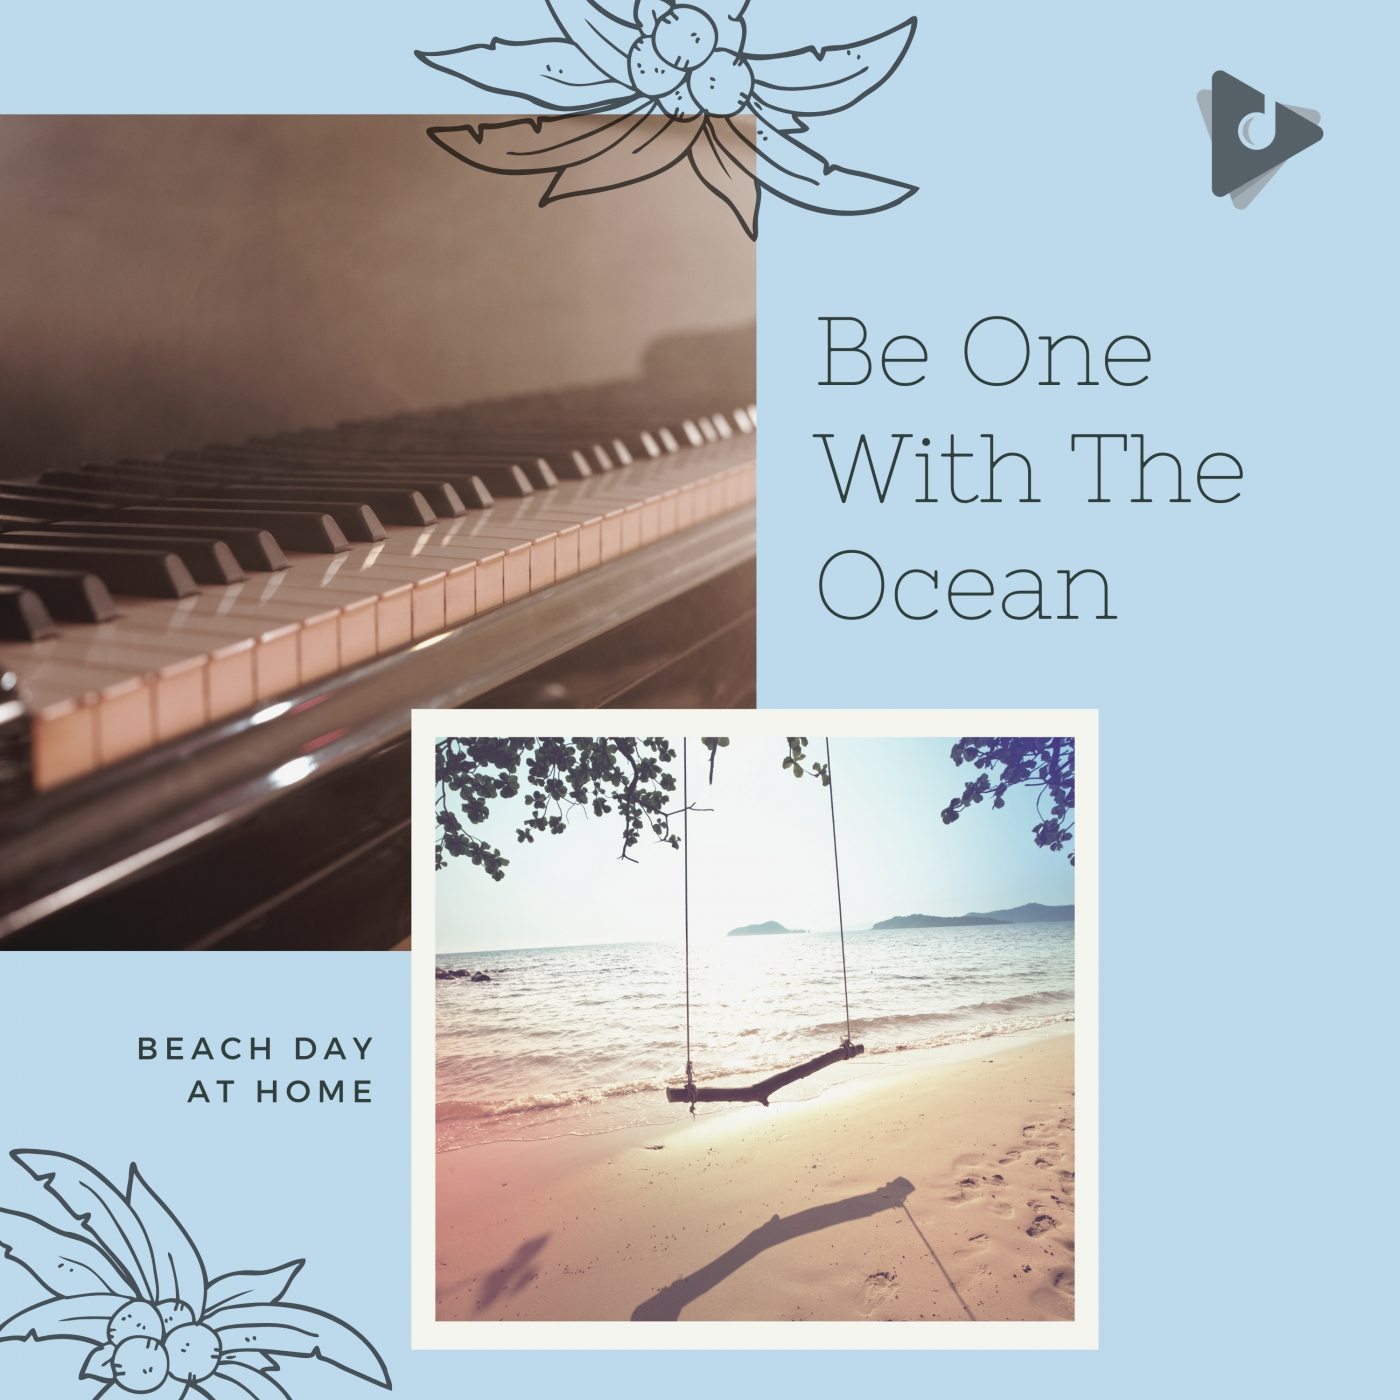 Be One With The Ocean